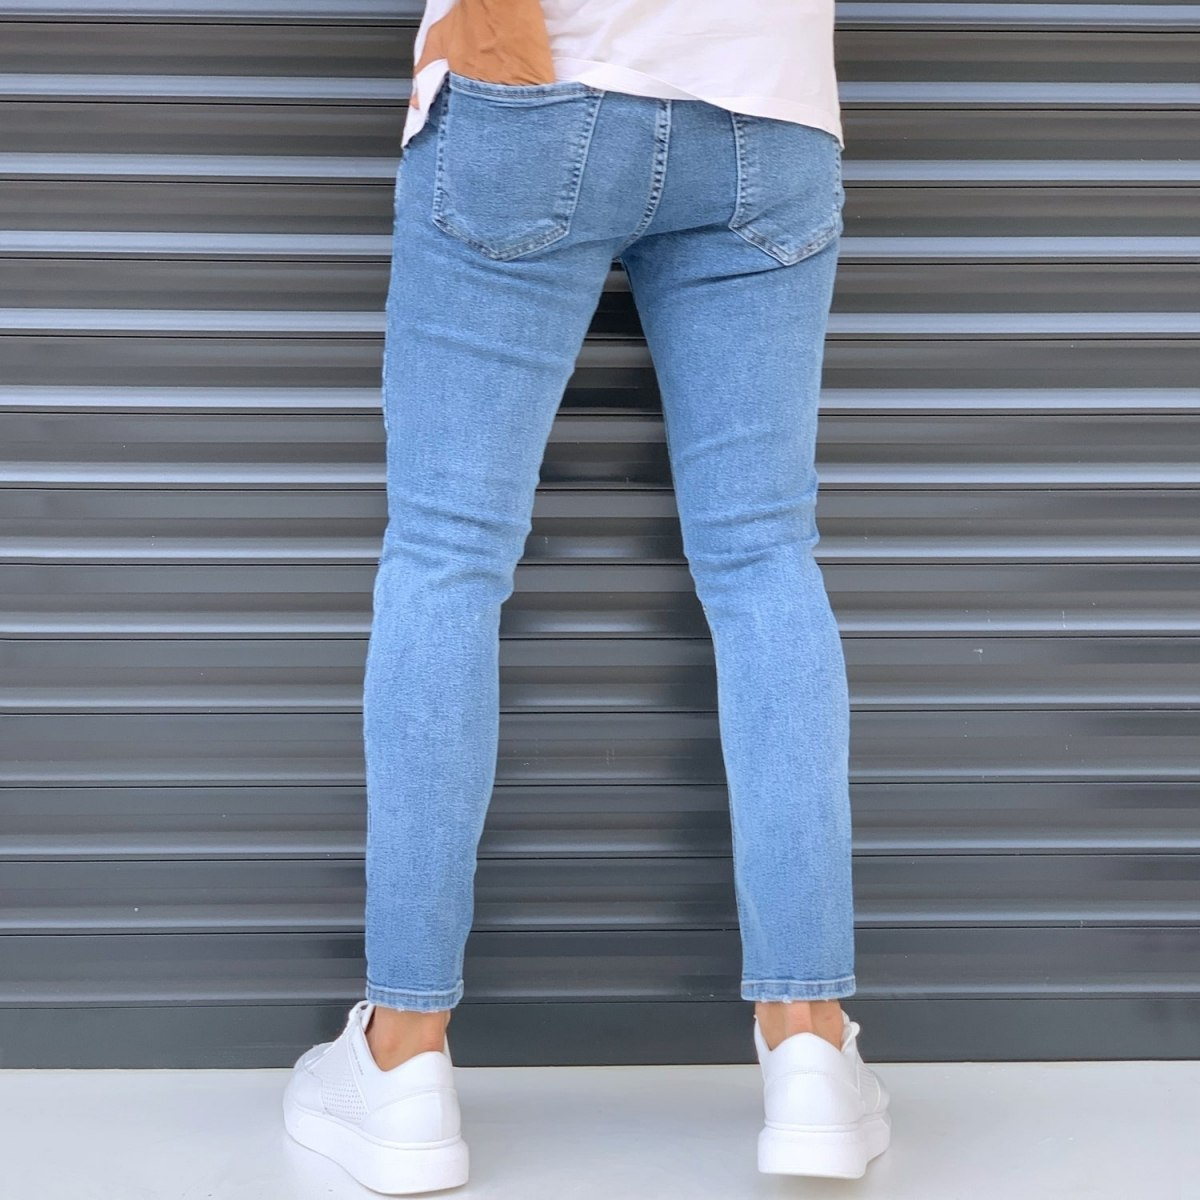 Men's Basic Jeans With Knee Rips Denim Blue Mv Premium Brand - 2